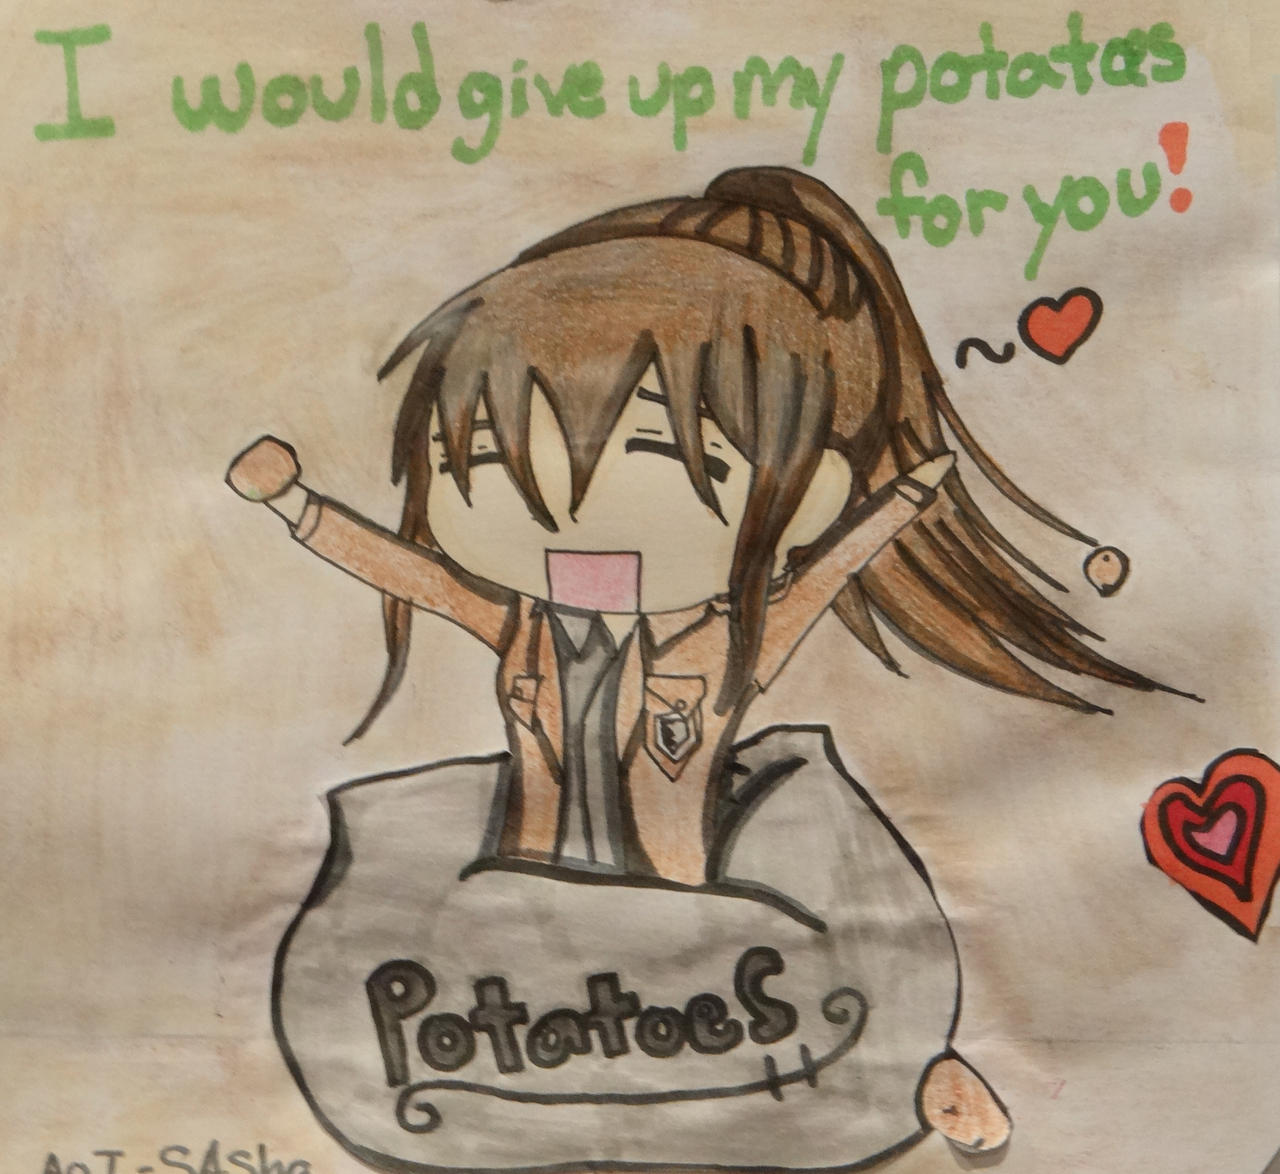 I would give up my potatoes for you by midnightpb